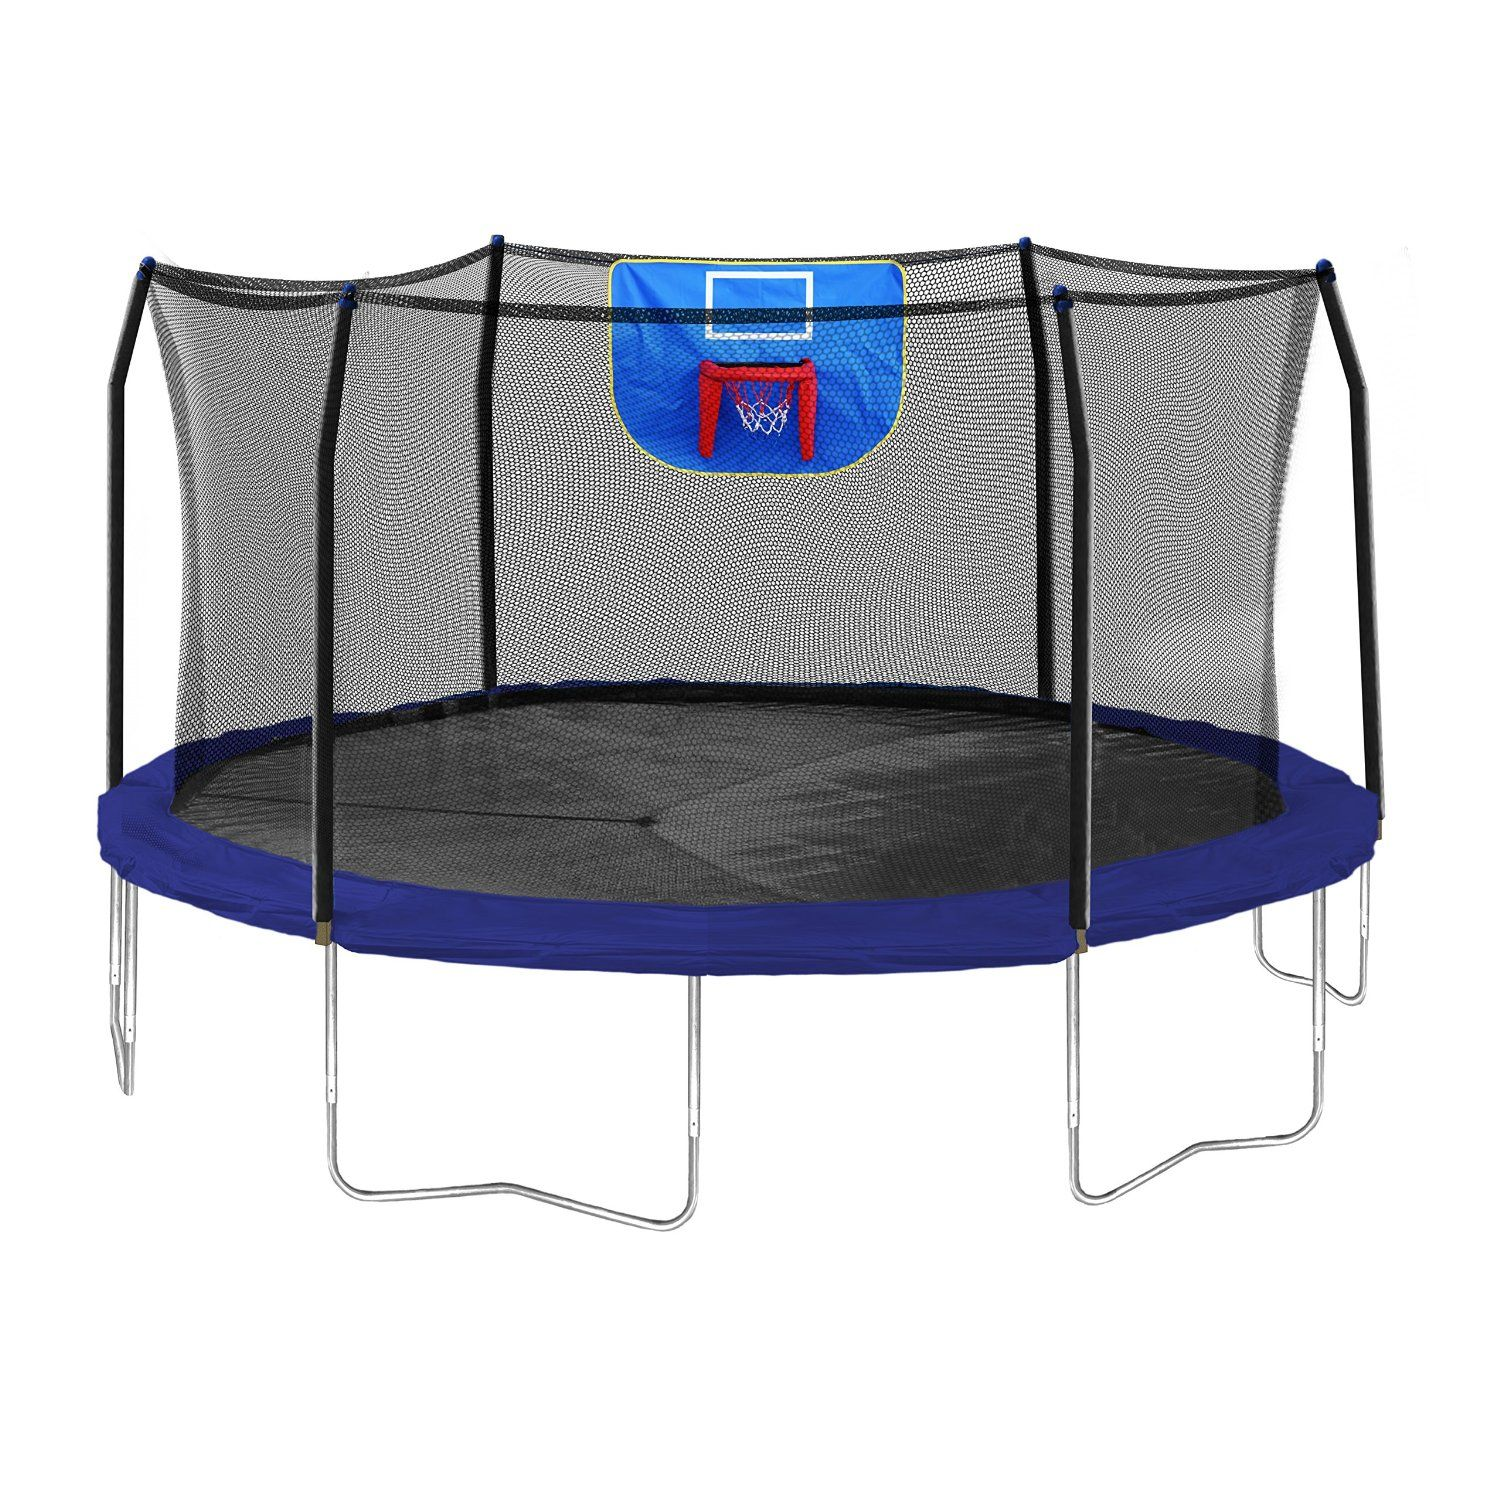 Amazon.com:+Skywalker+Trampolines+15-Feet+Jump+N'+Dunk+Trampoline+with+Safety+Enclosure+and+Basketball+Hoop+$249.99+{reg.+$349}+-+Today+Only!